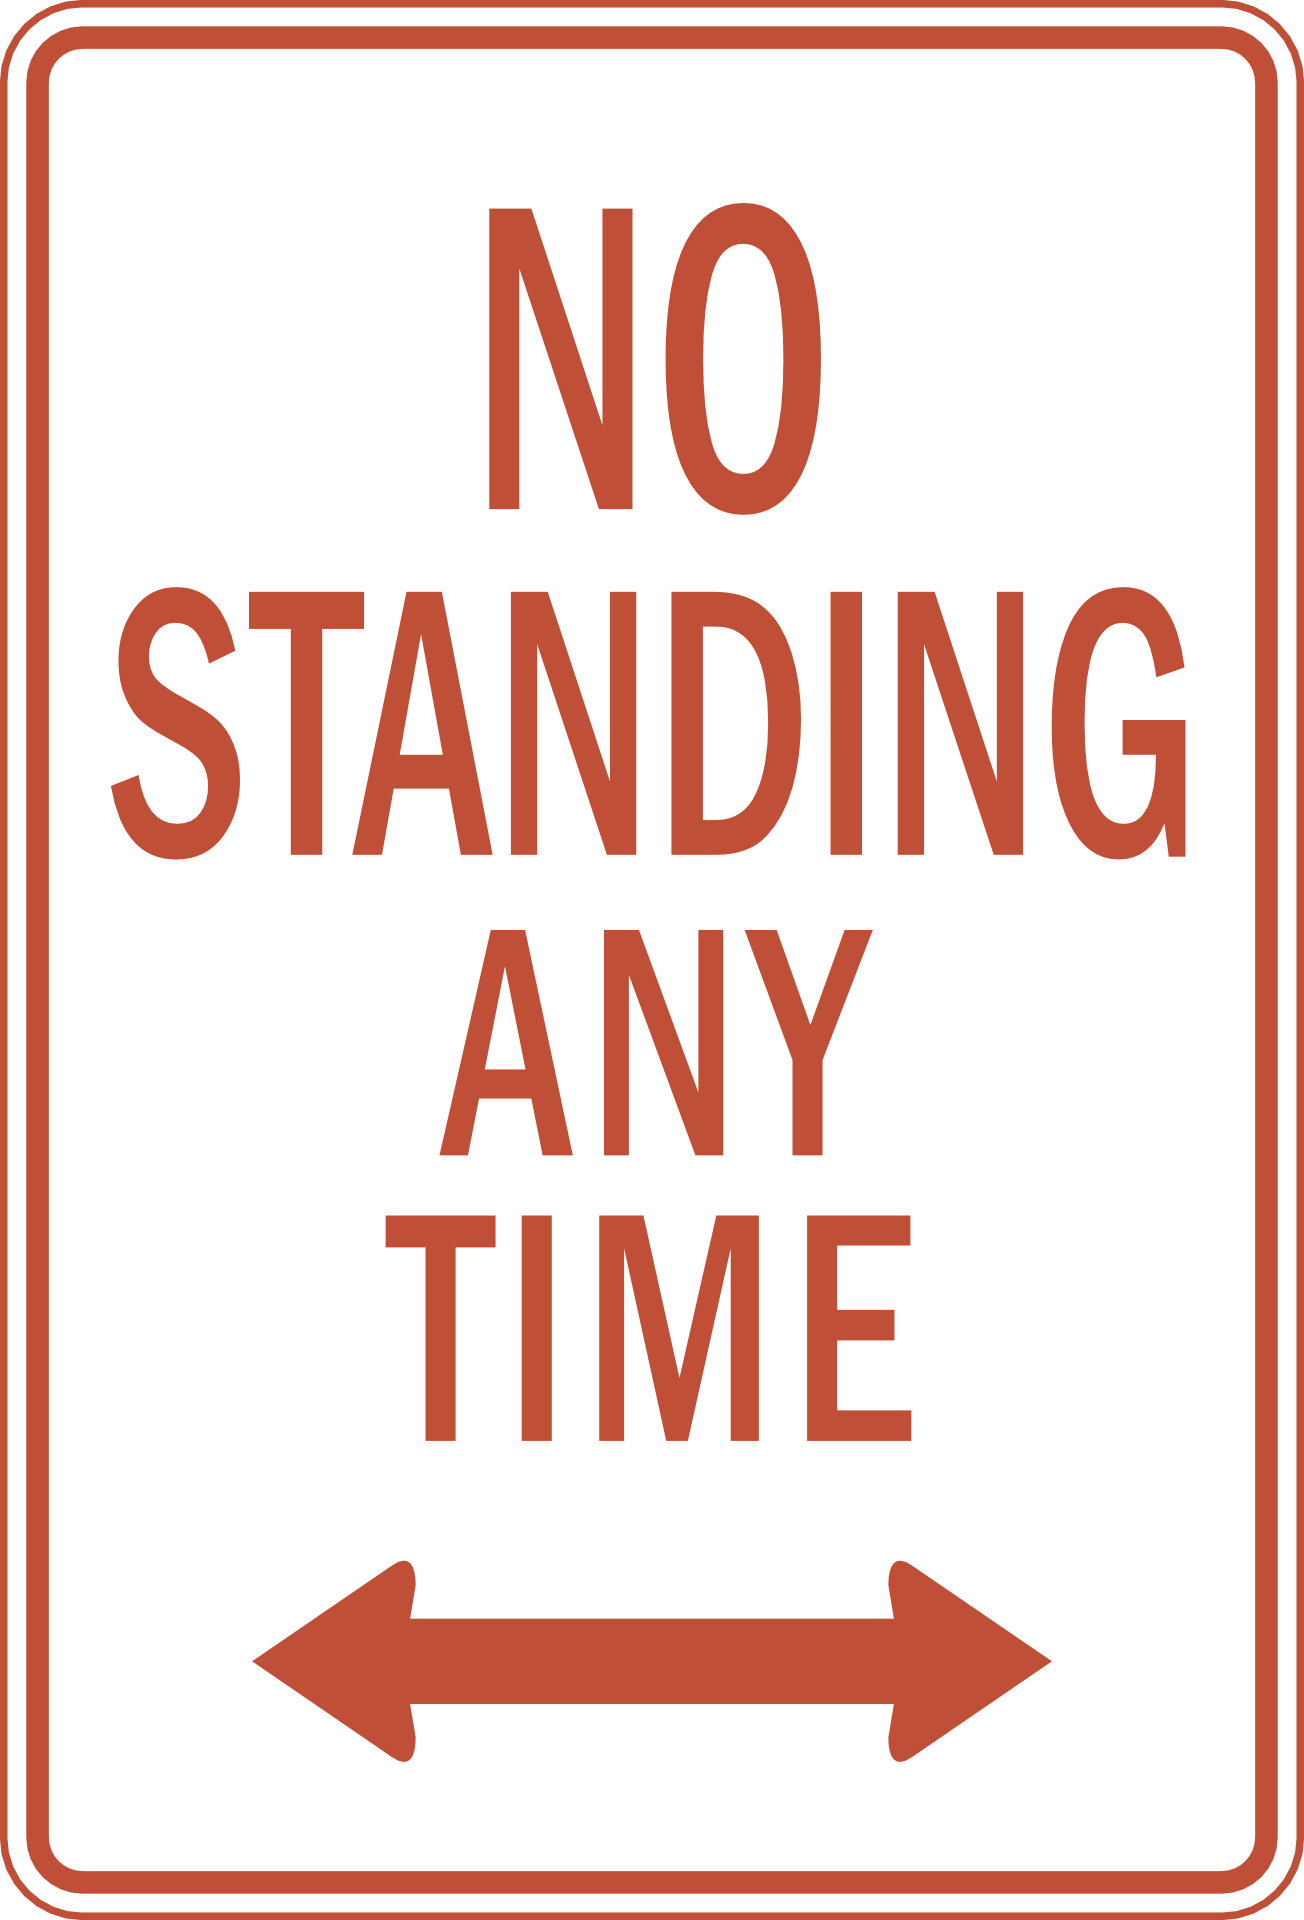 no standing any time,sign vector